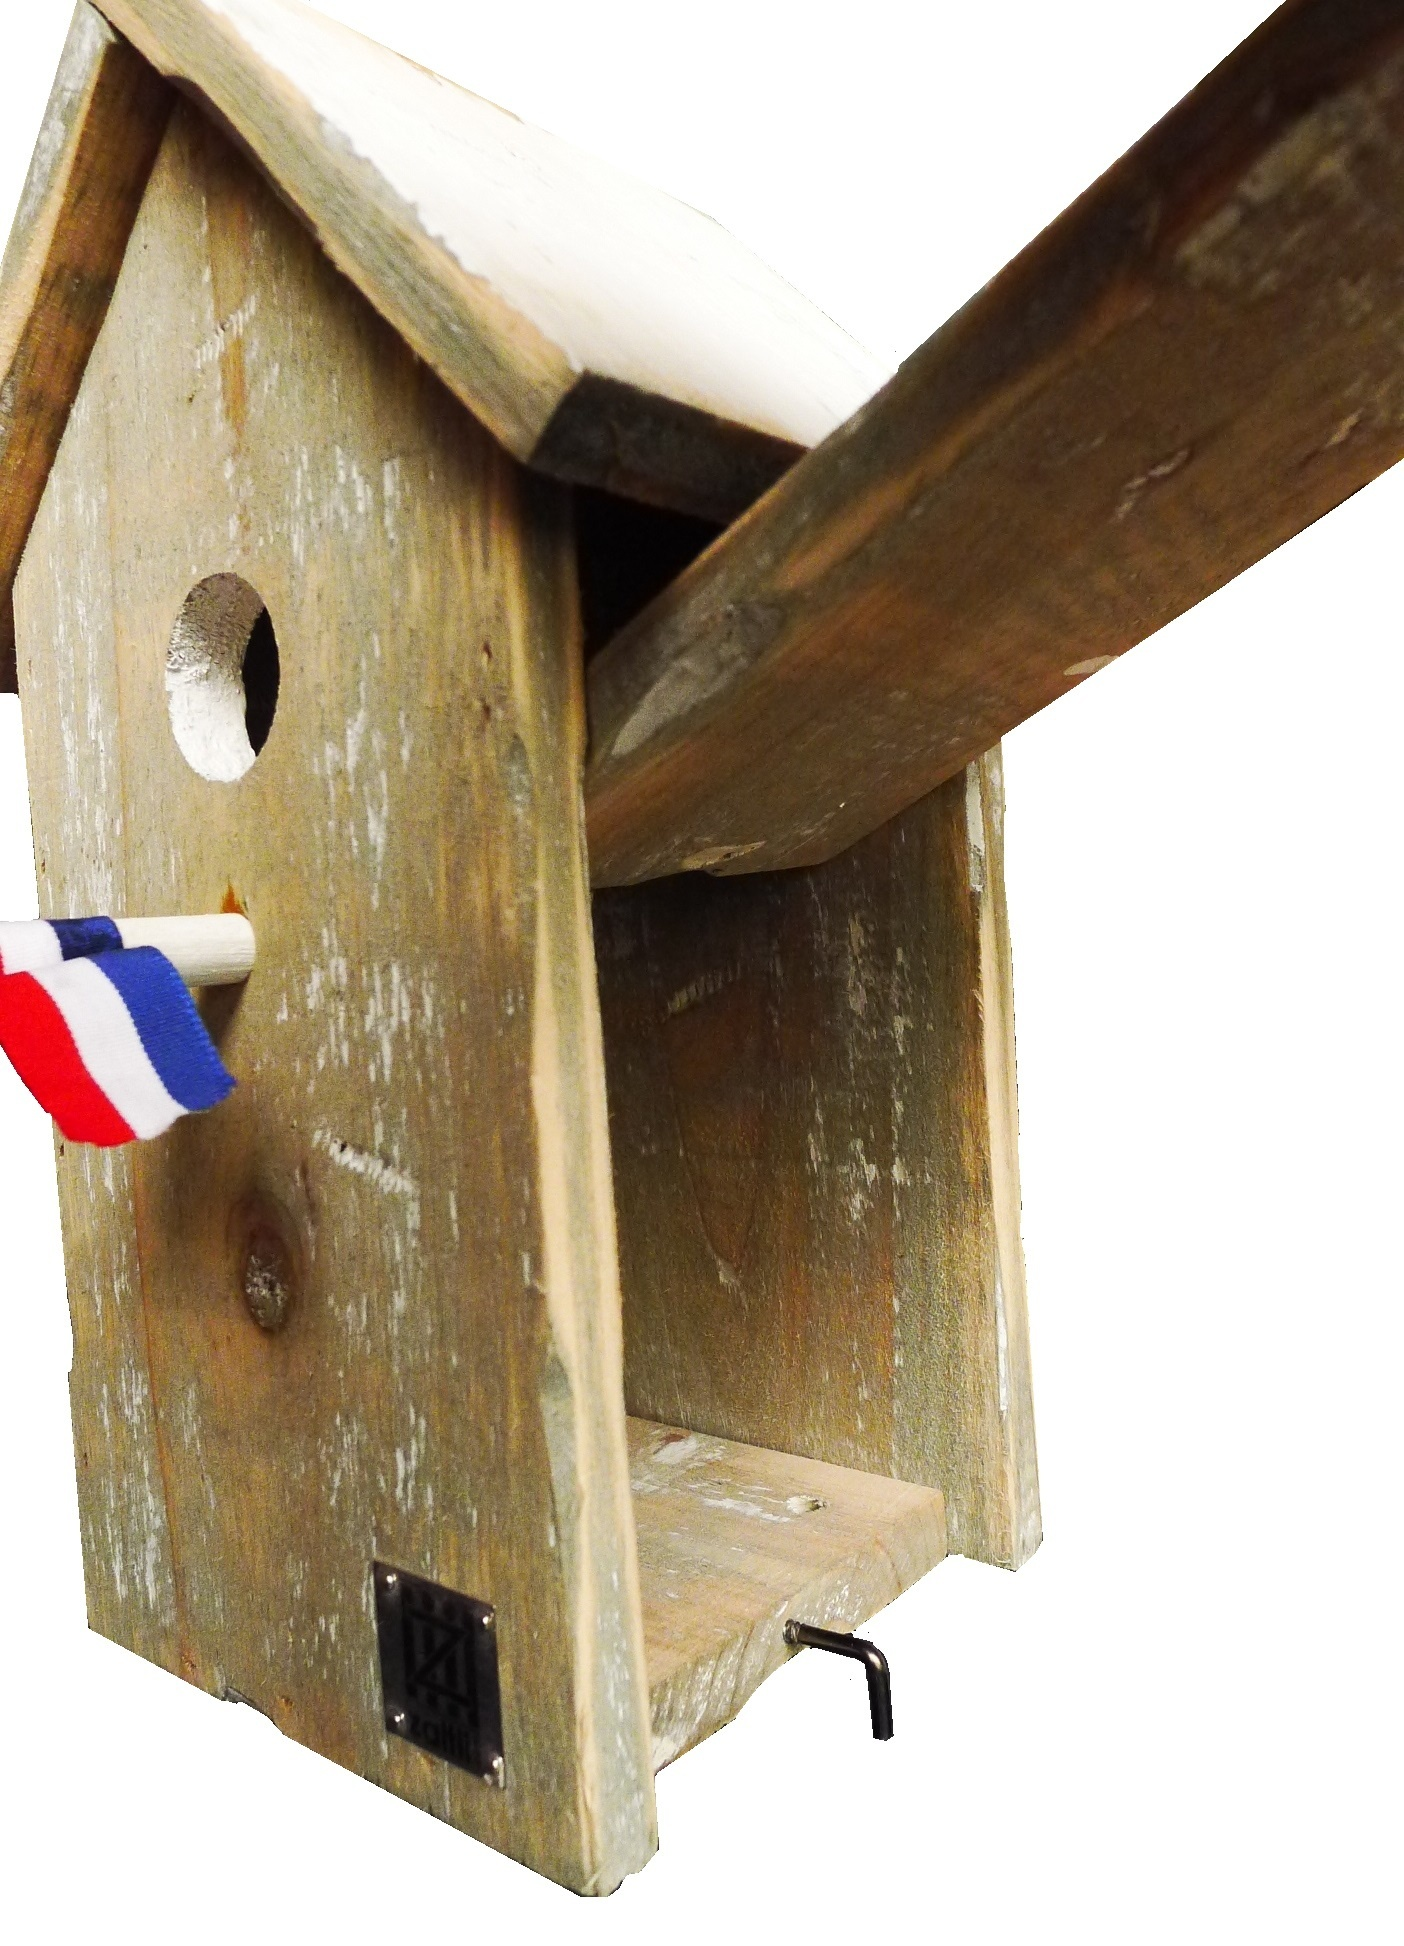 birdhouse old dutch stB pointed roof-6